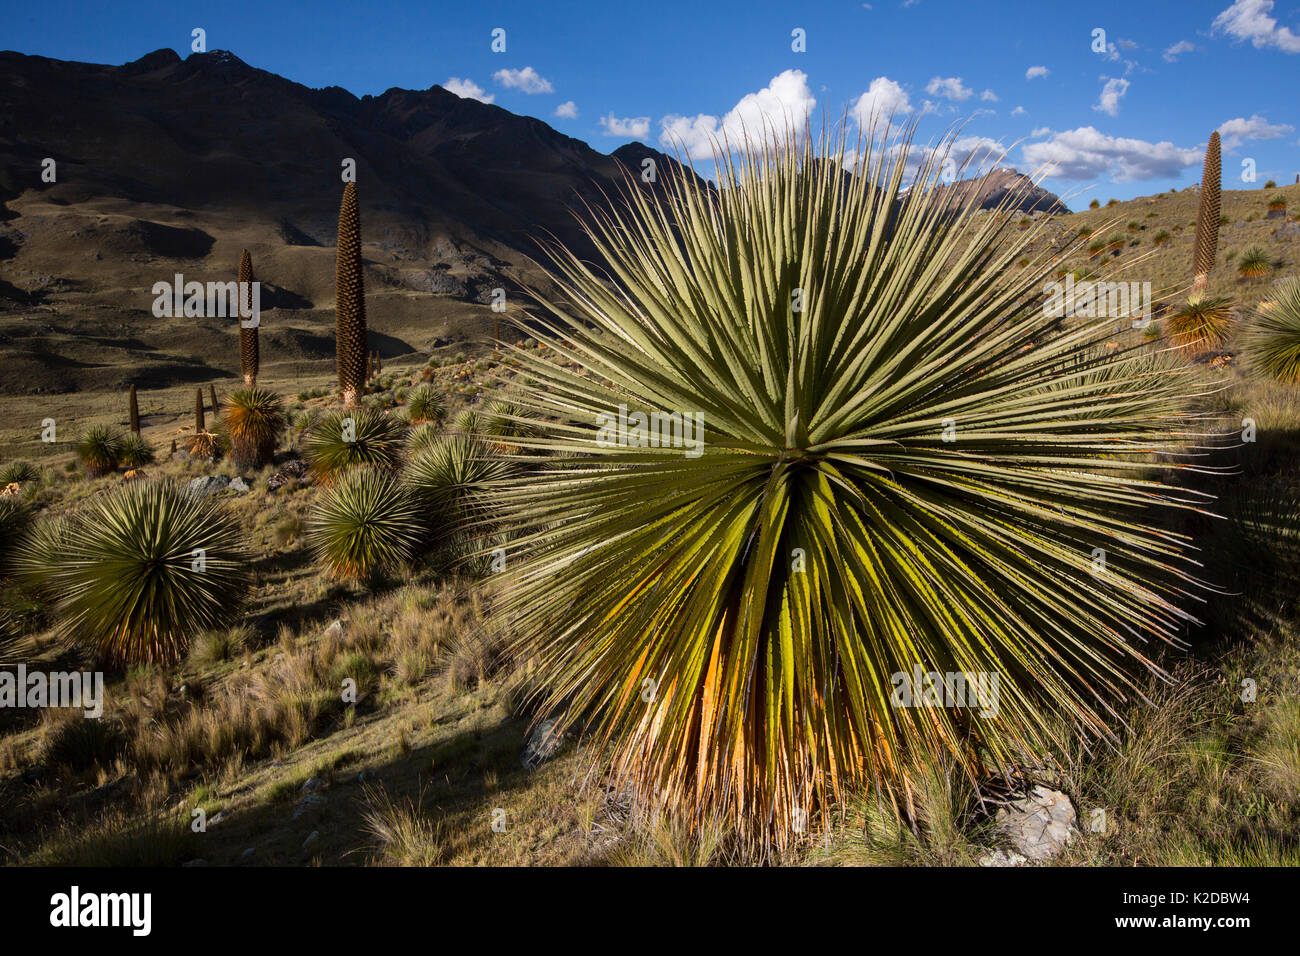 Queen of the Andes (Puya raymondii) plants in steppe, Cordillera Blanca, Andes, Peru Stock Photo